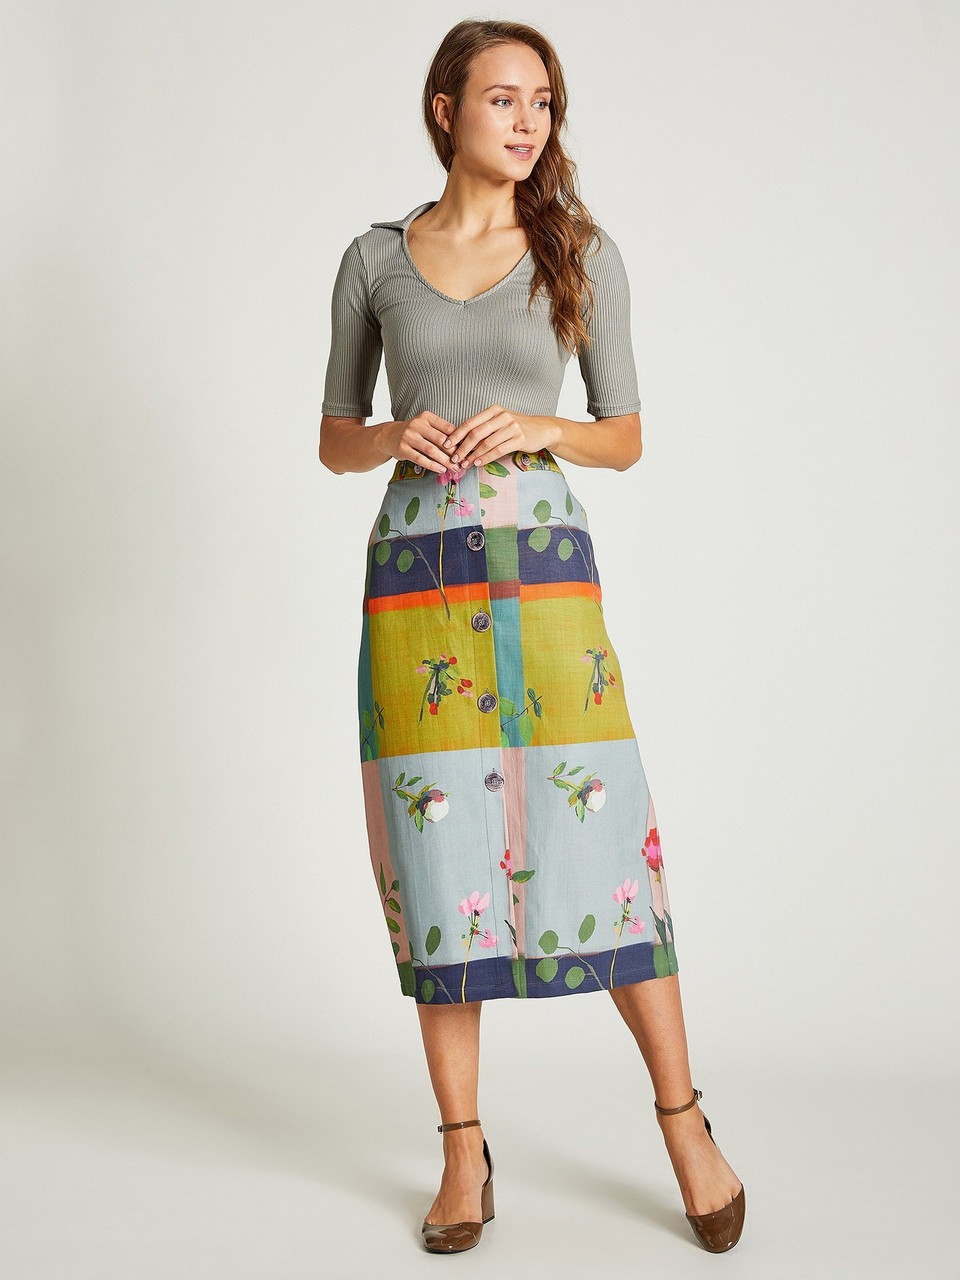 Floral Patterned Midi Skirt With Front Buttoned